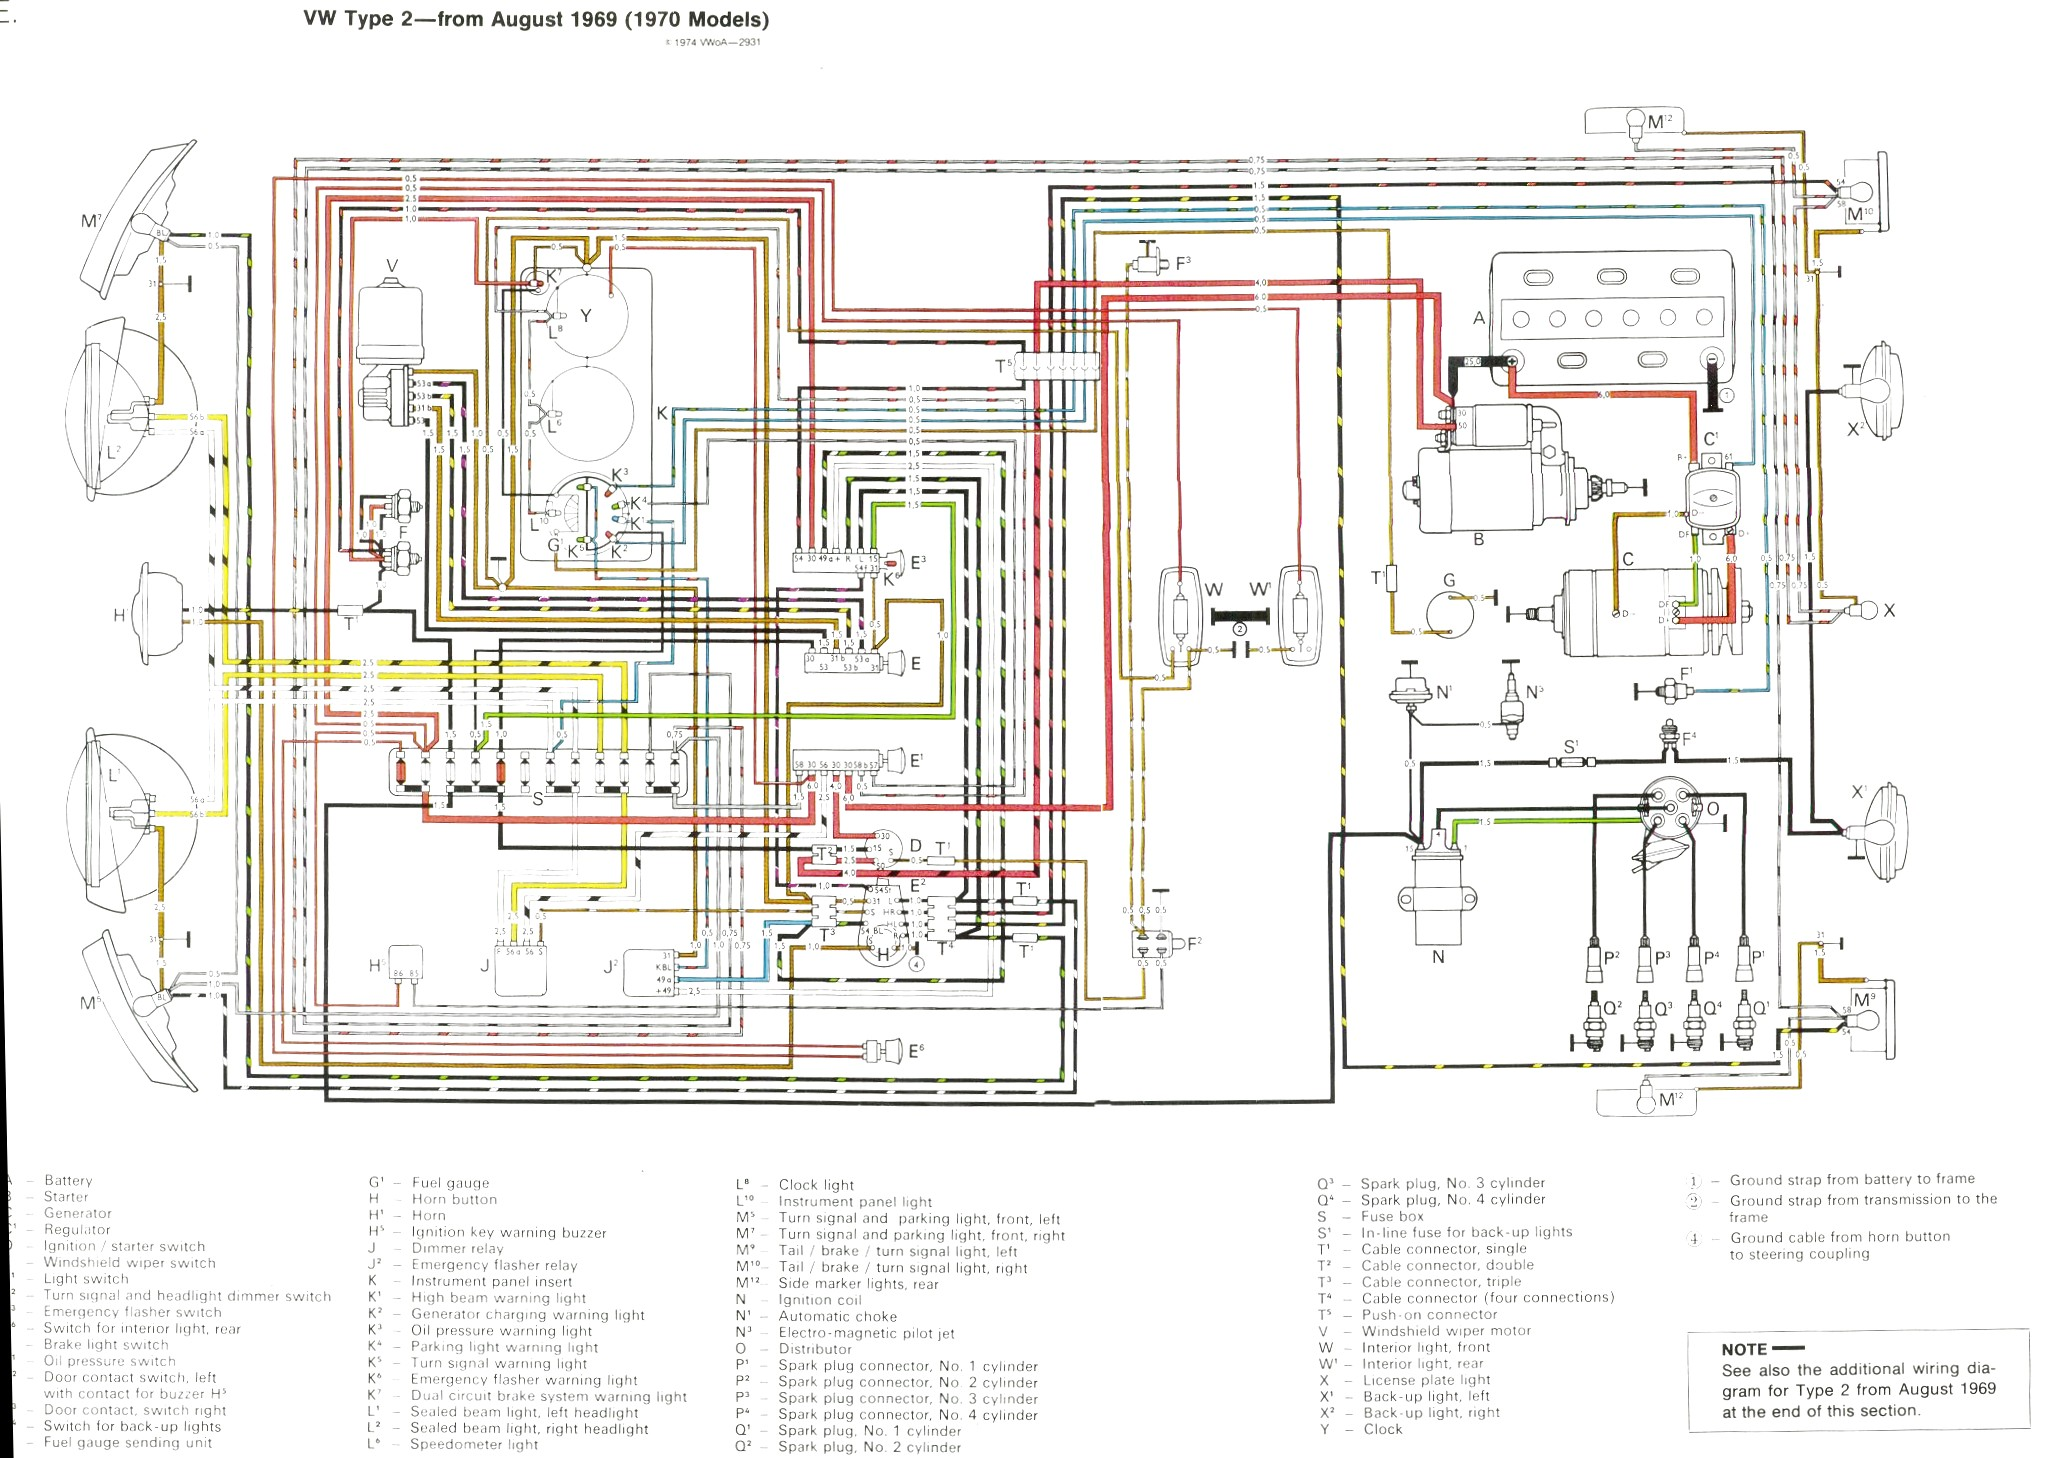 VintageBus.Com - VW Bus (and other) Wiring Diagrams on 1971 vw super beetle starter diagram, 70 vw beetle, 70 vw chassis, 70 vw engine, bay window diagram, 1968 vw beetle speedometer diagram, 1970 vw electrical diagram, 74 super beetle front end diagram, vw type 3 engine diagram, vw beetle fuse box diagram, 2nd gen eclipse alternator diagram,